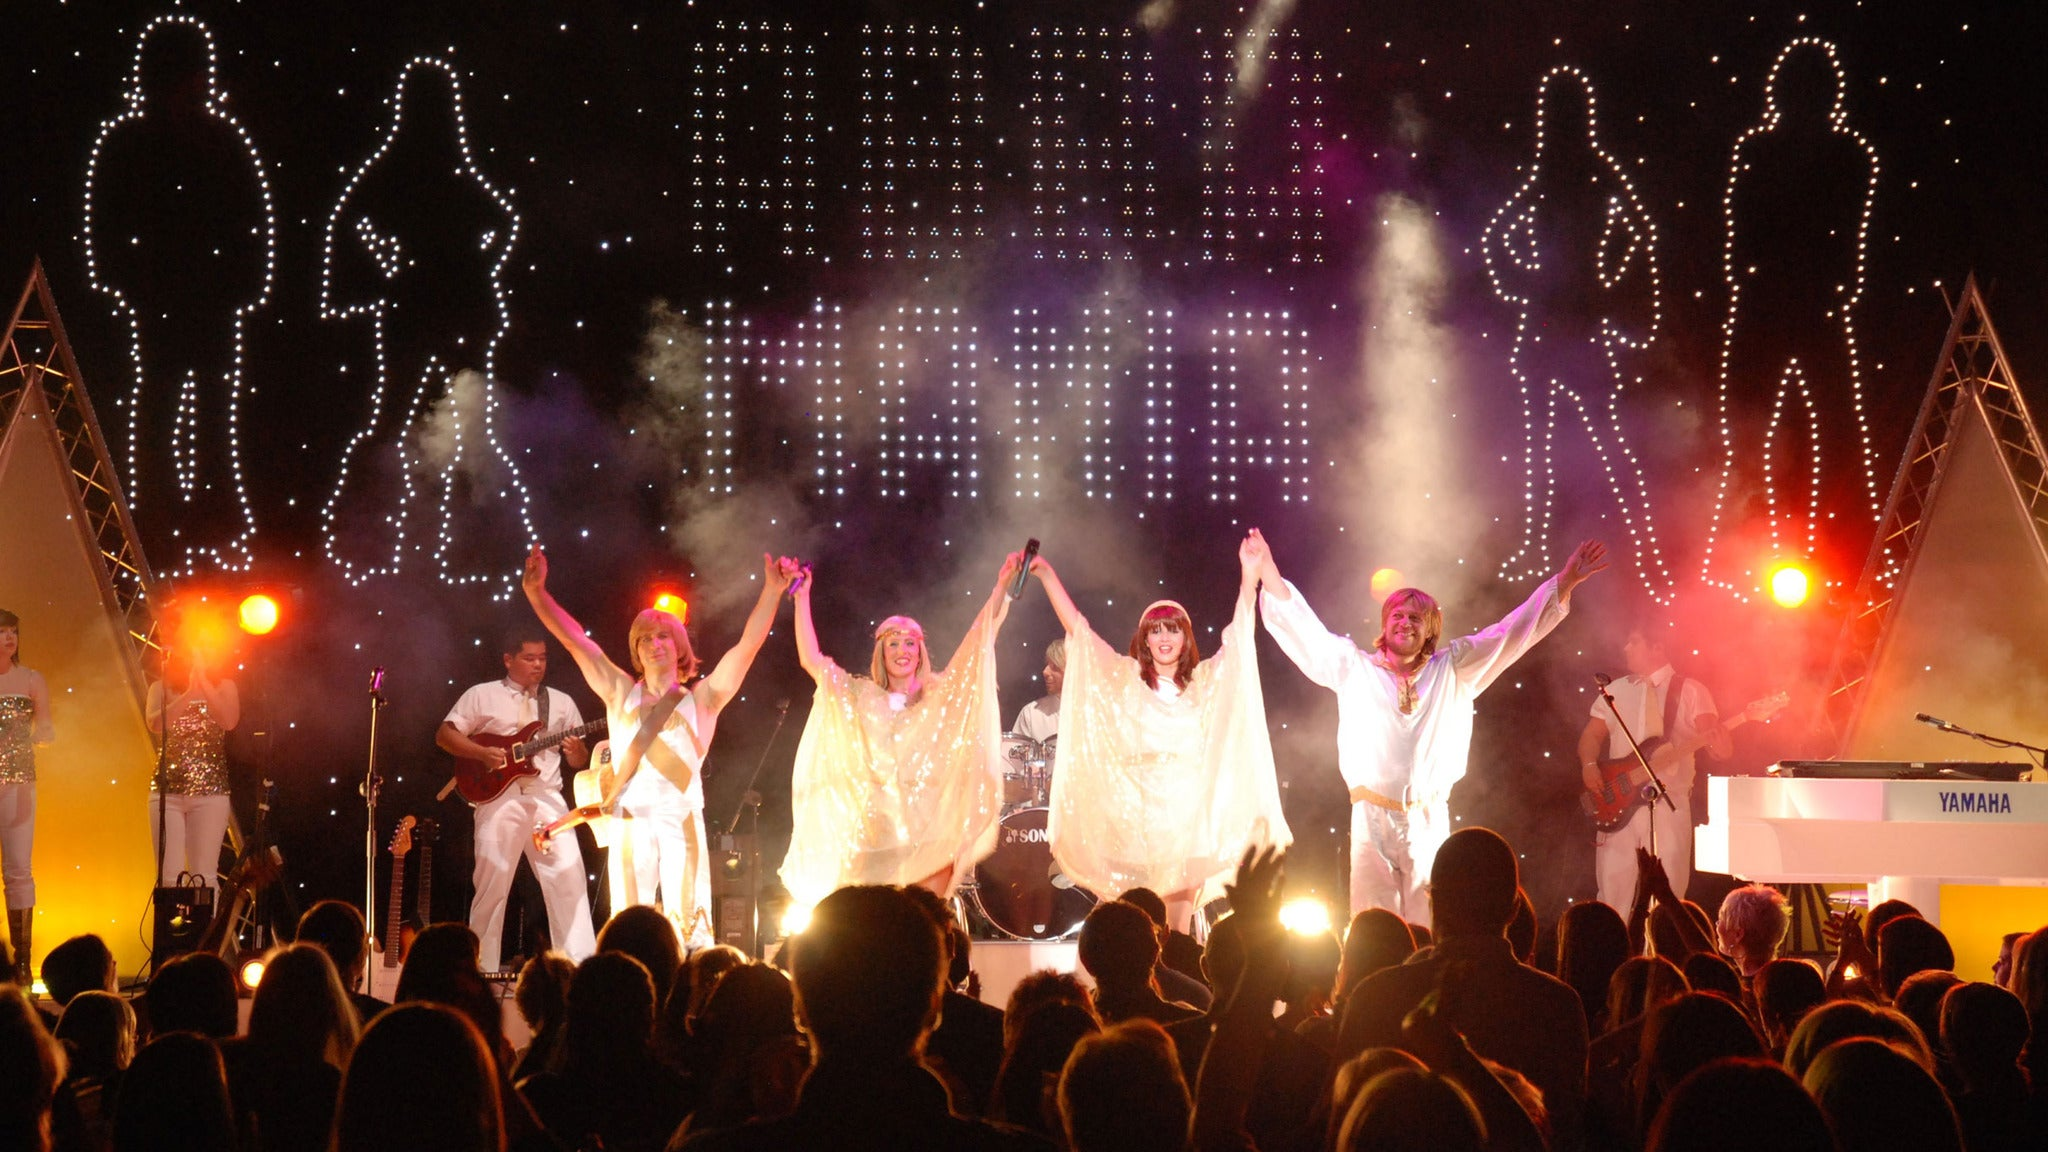 Abba Mania at Flint Center